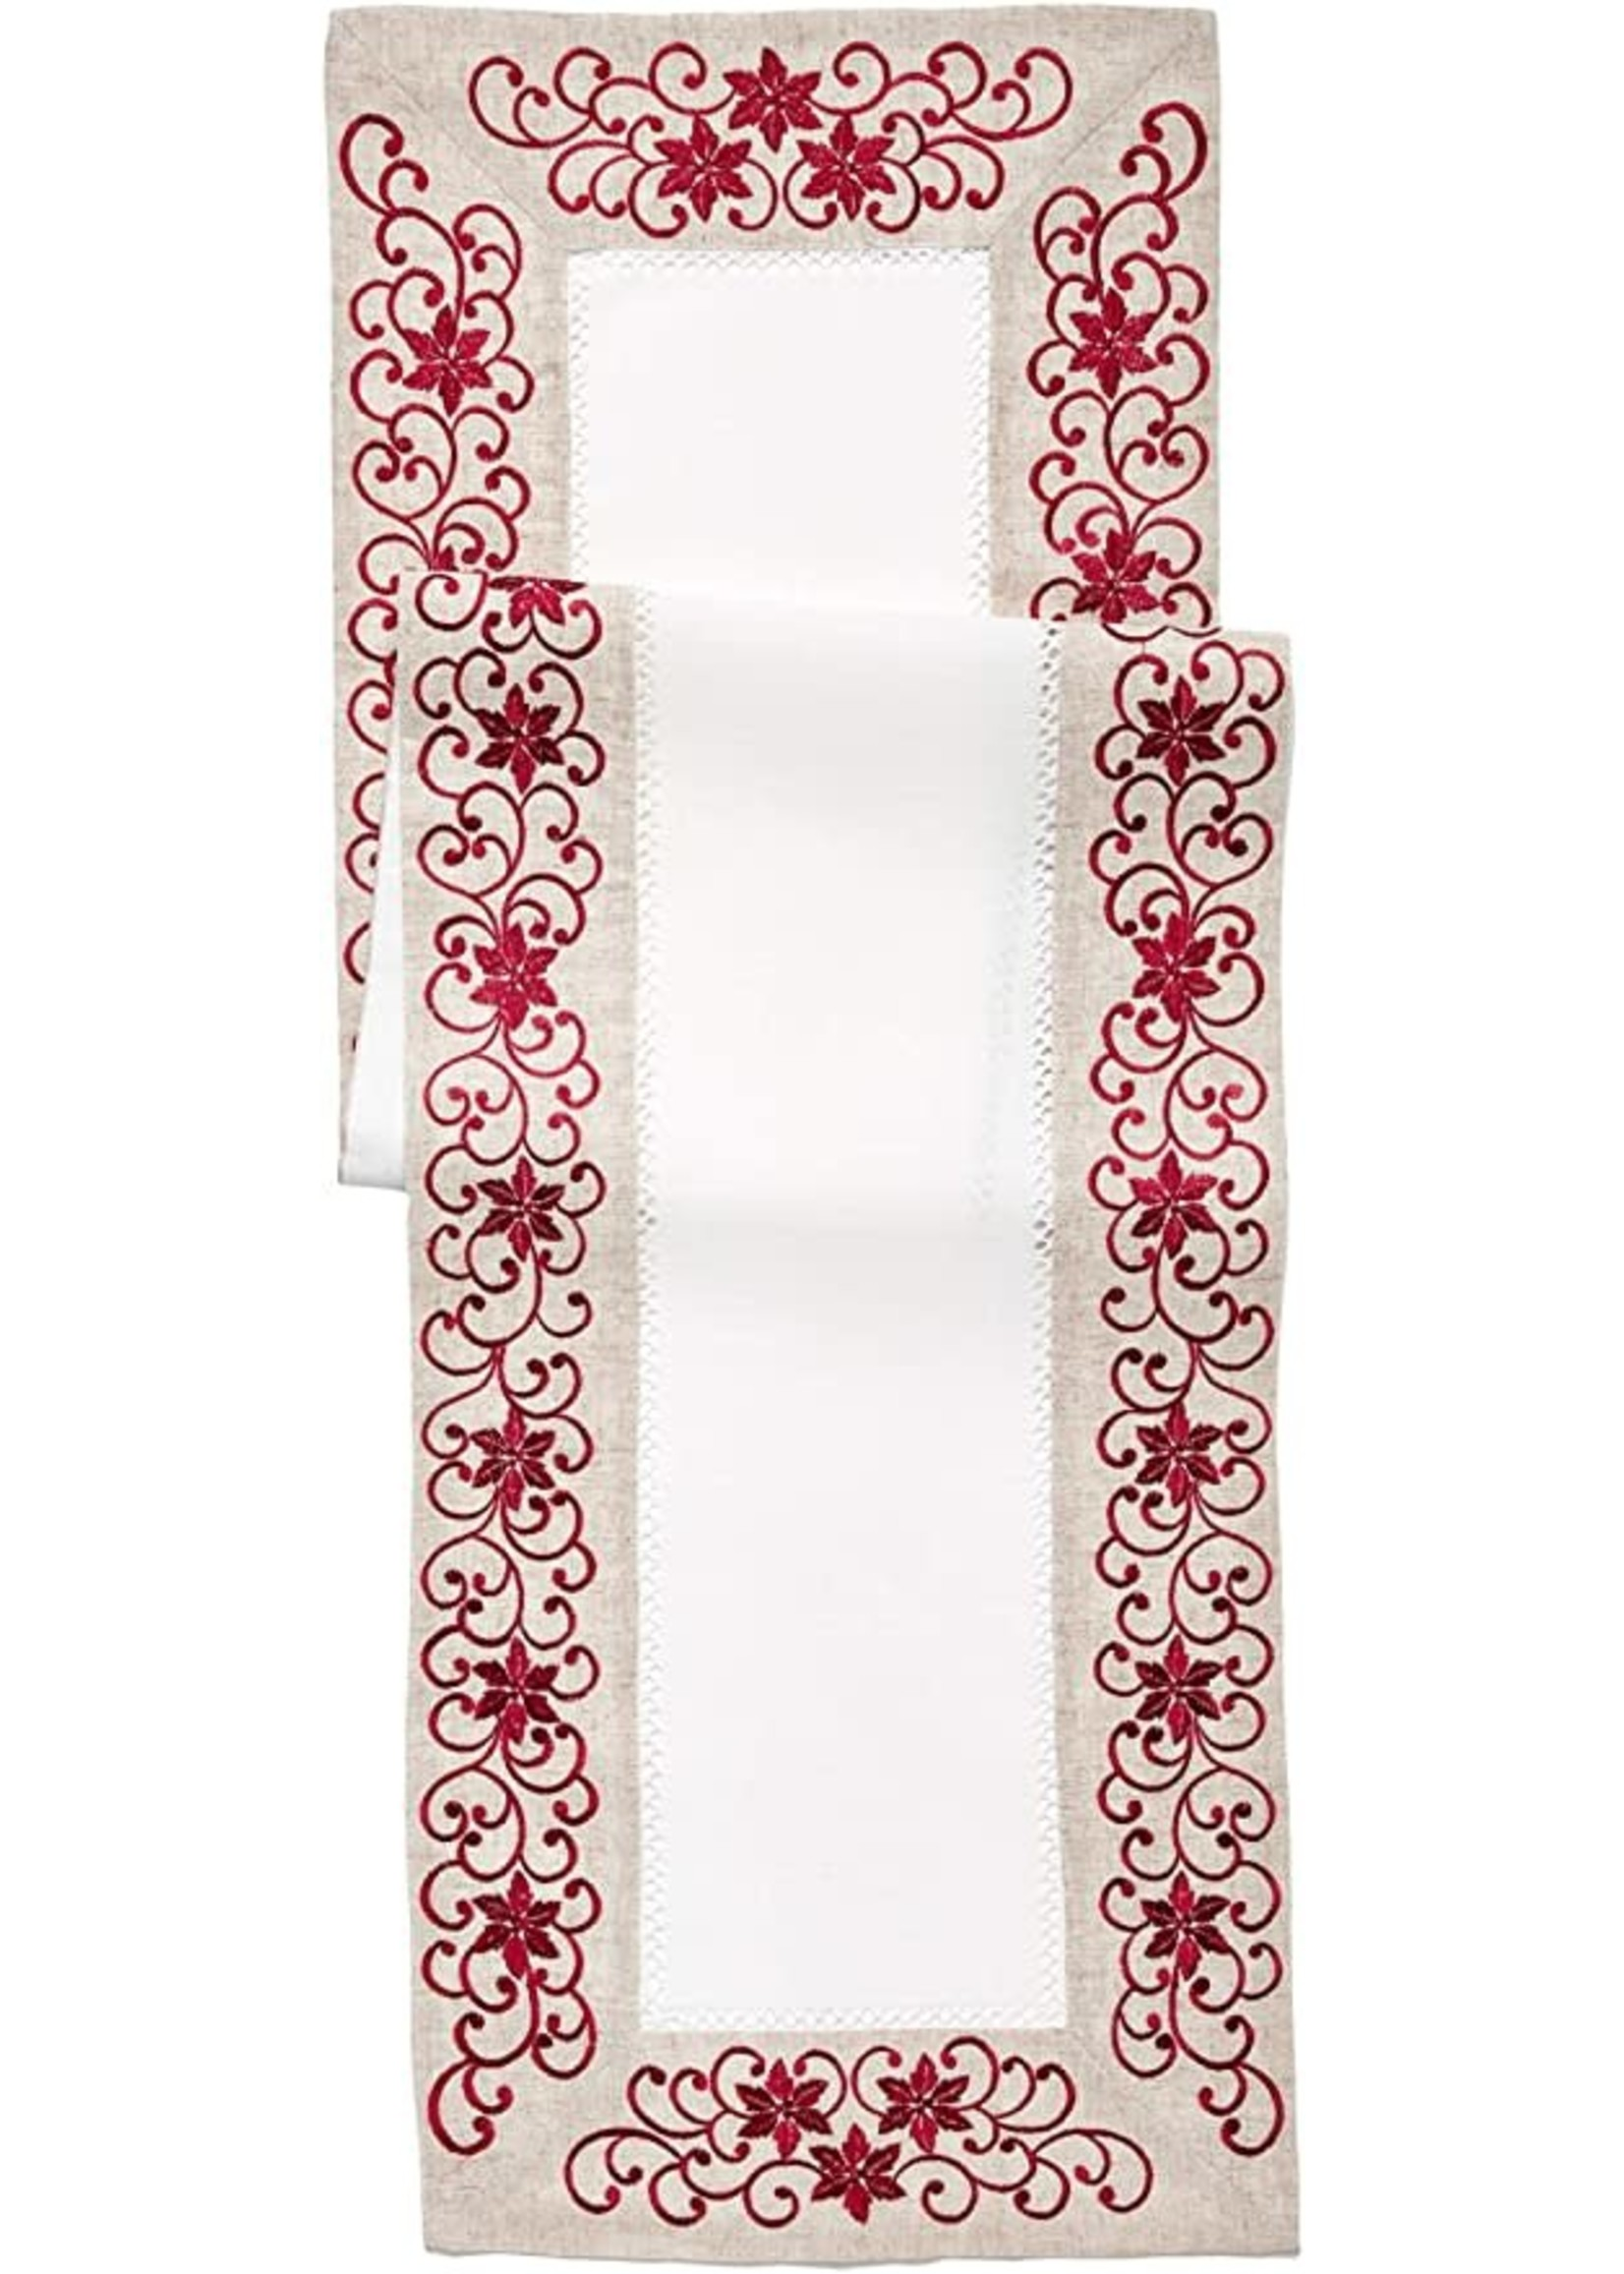 EMBROIDERED AND CUTWORK RUNNER 18X72 OBLONG